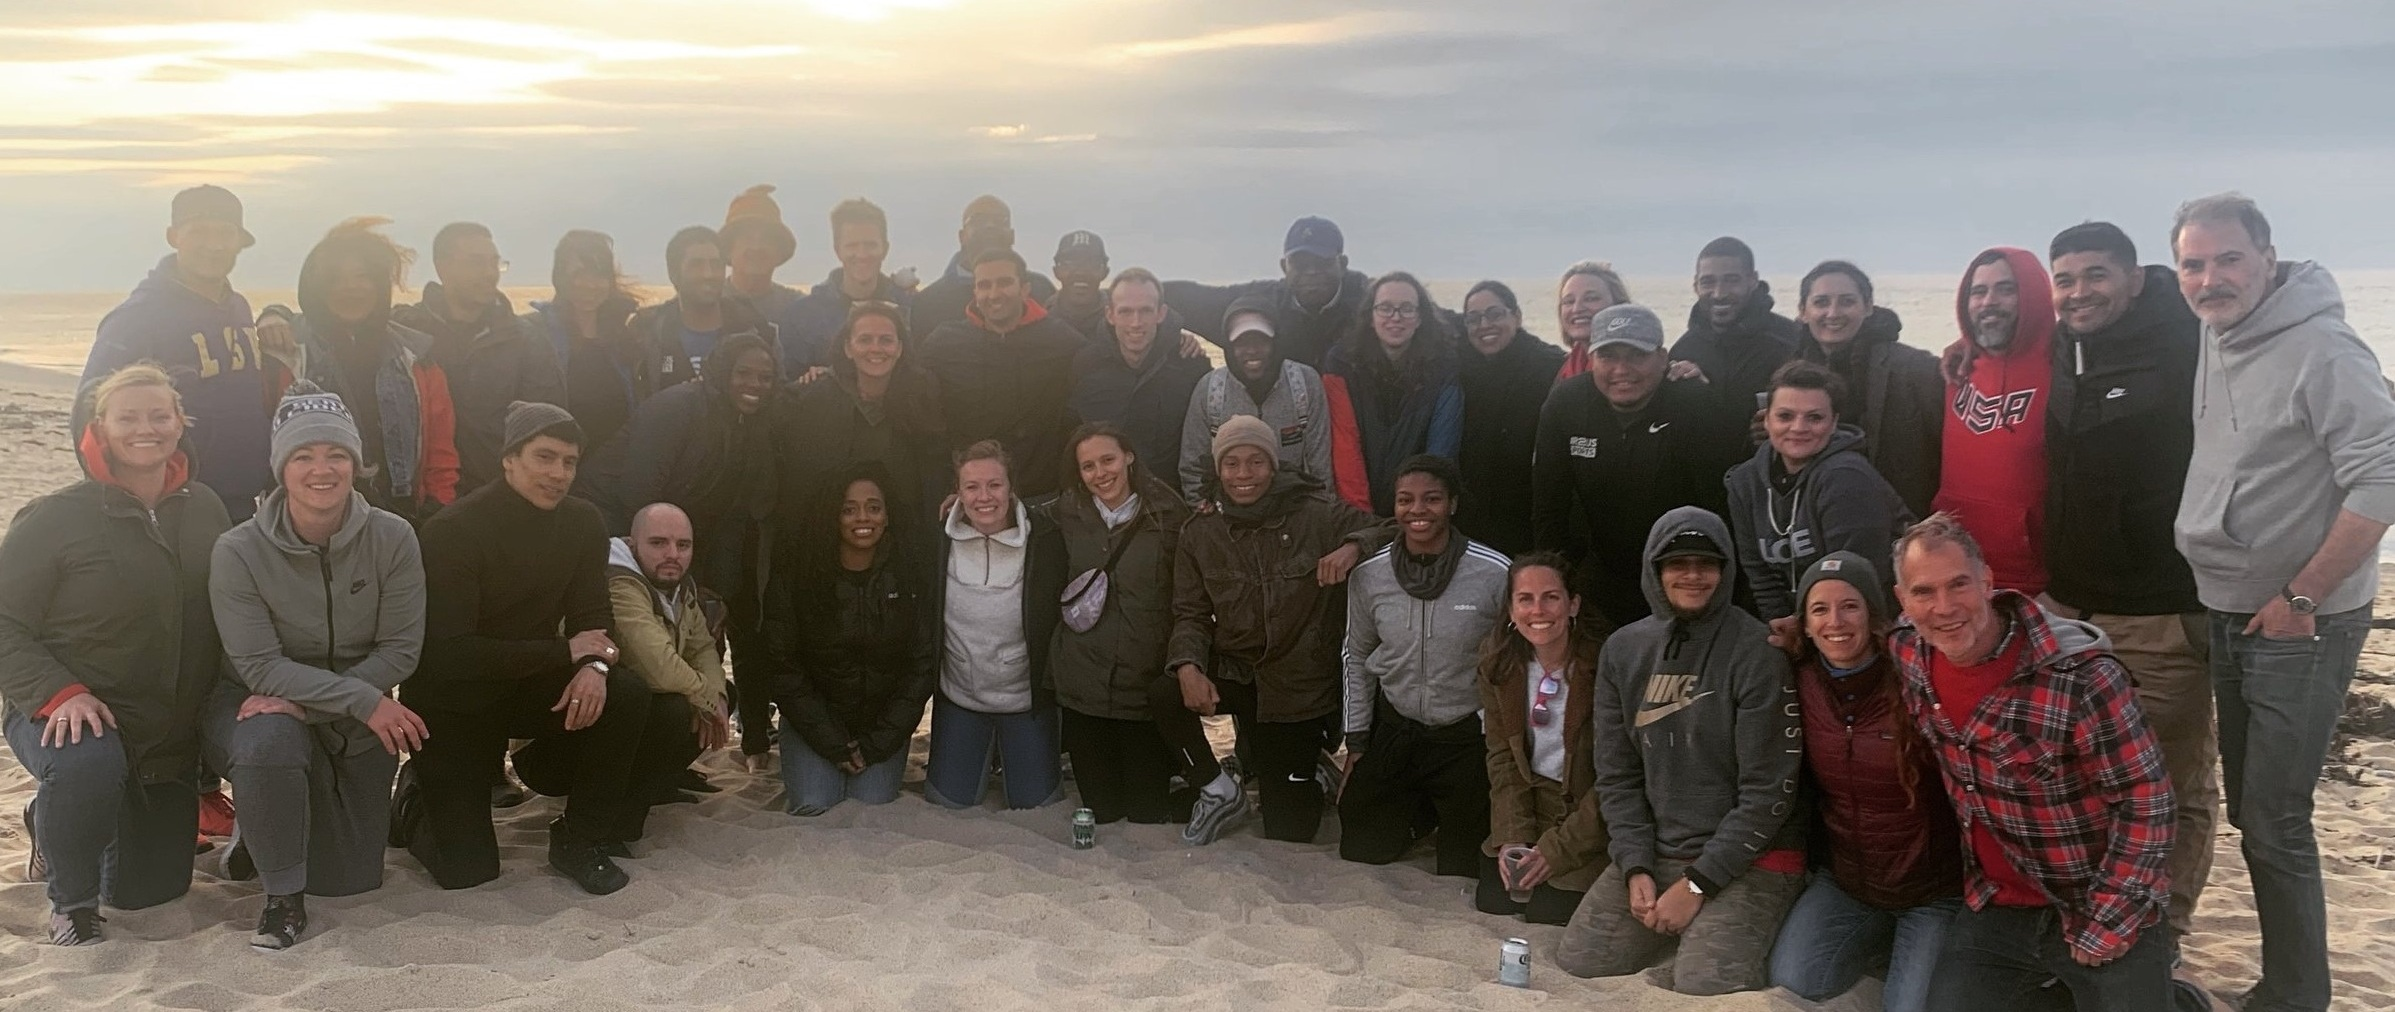 Up2Us Sports staff at the Annual All Staff Retreat in Provincetown, Massachusetts. June, 2019.